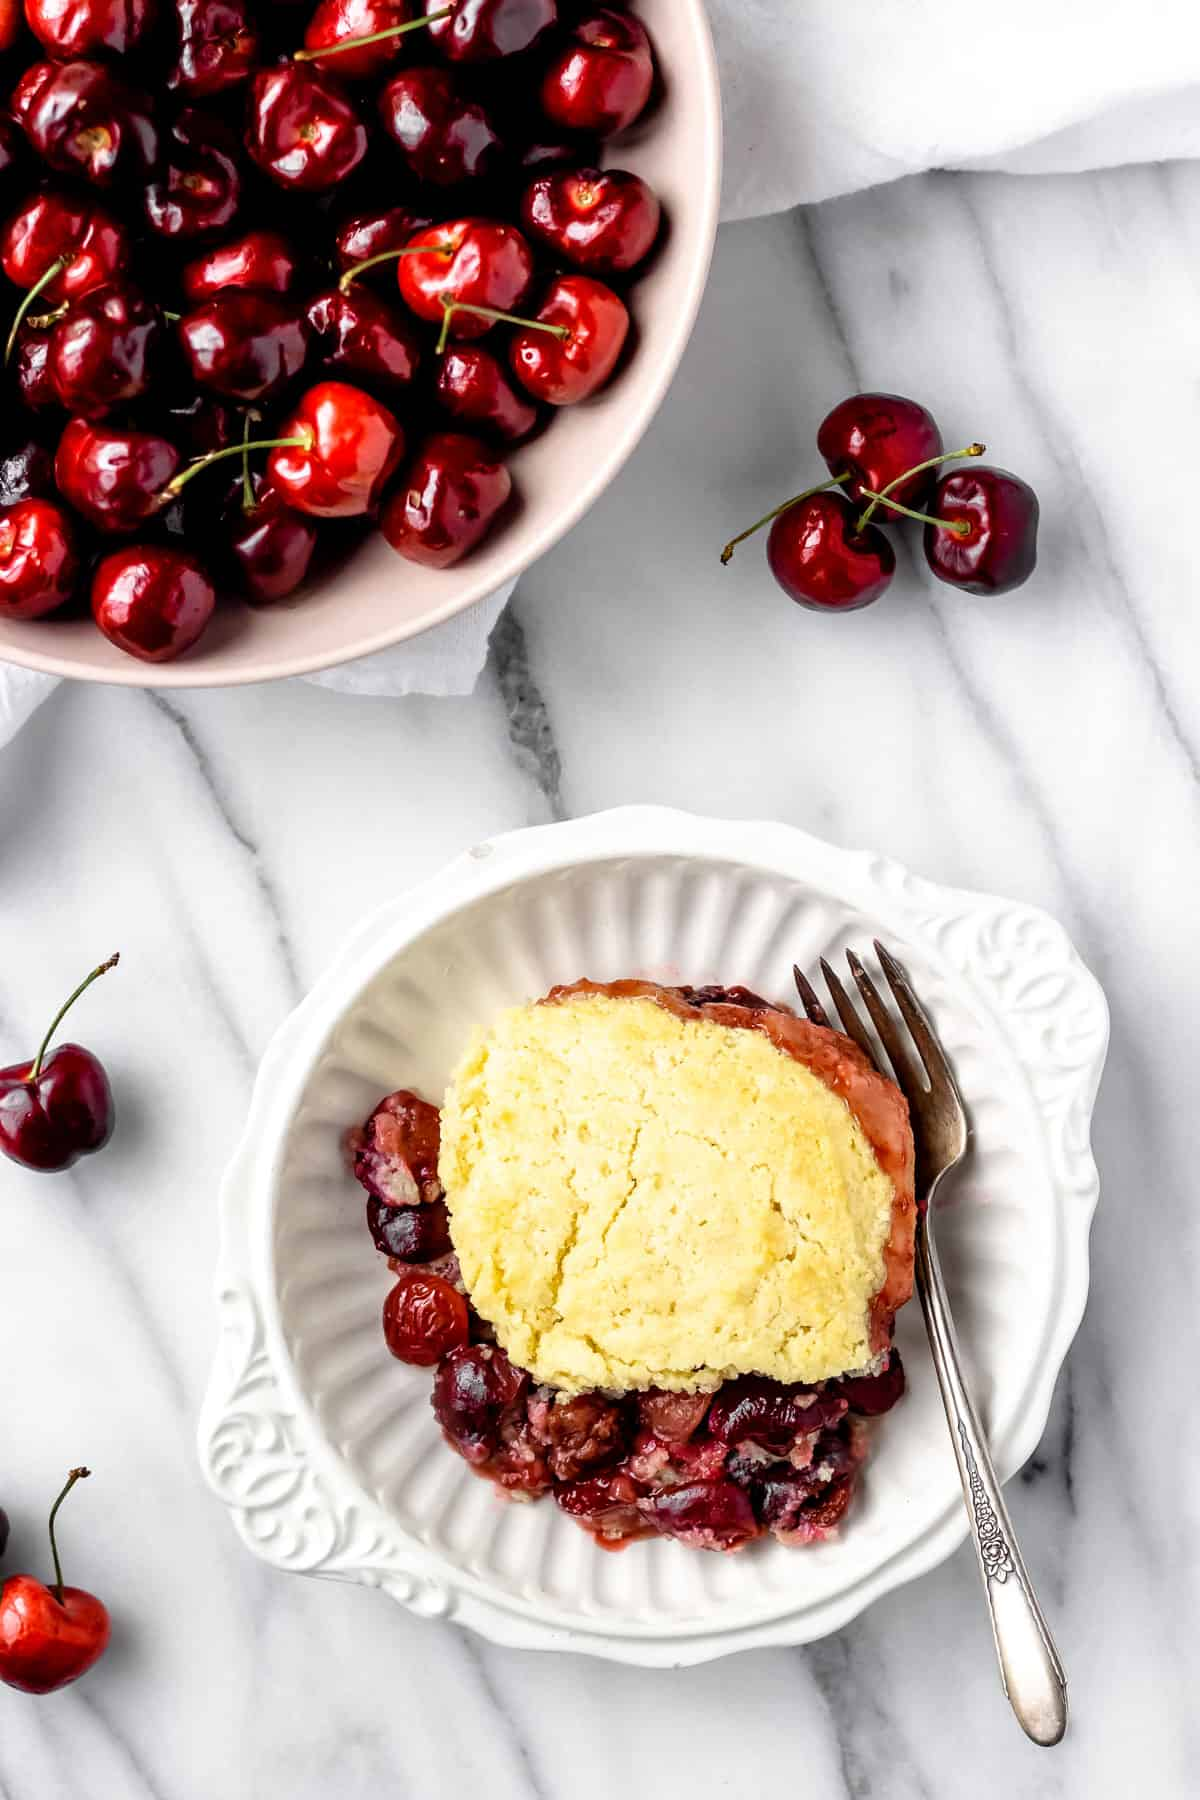 Overhead view of cherry cobbler in a white bowl with a bowl of cherries and several cherries scattered around